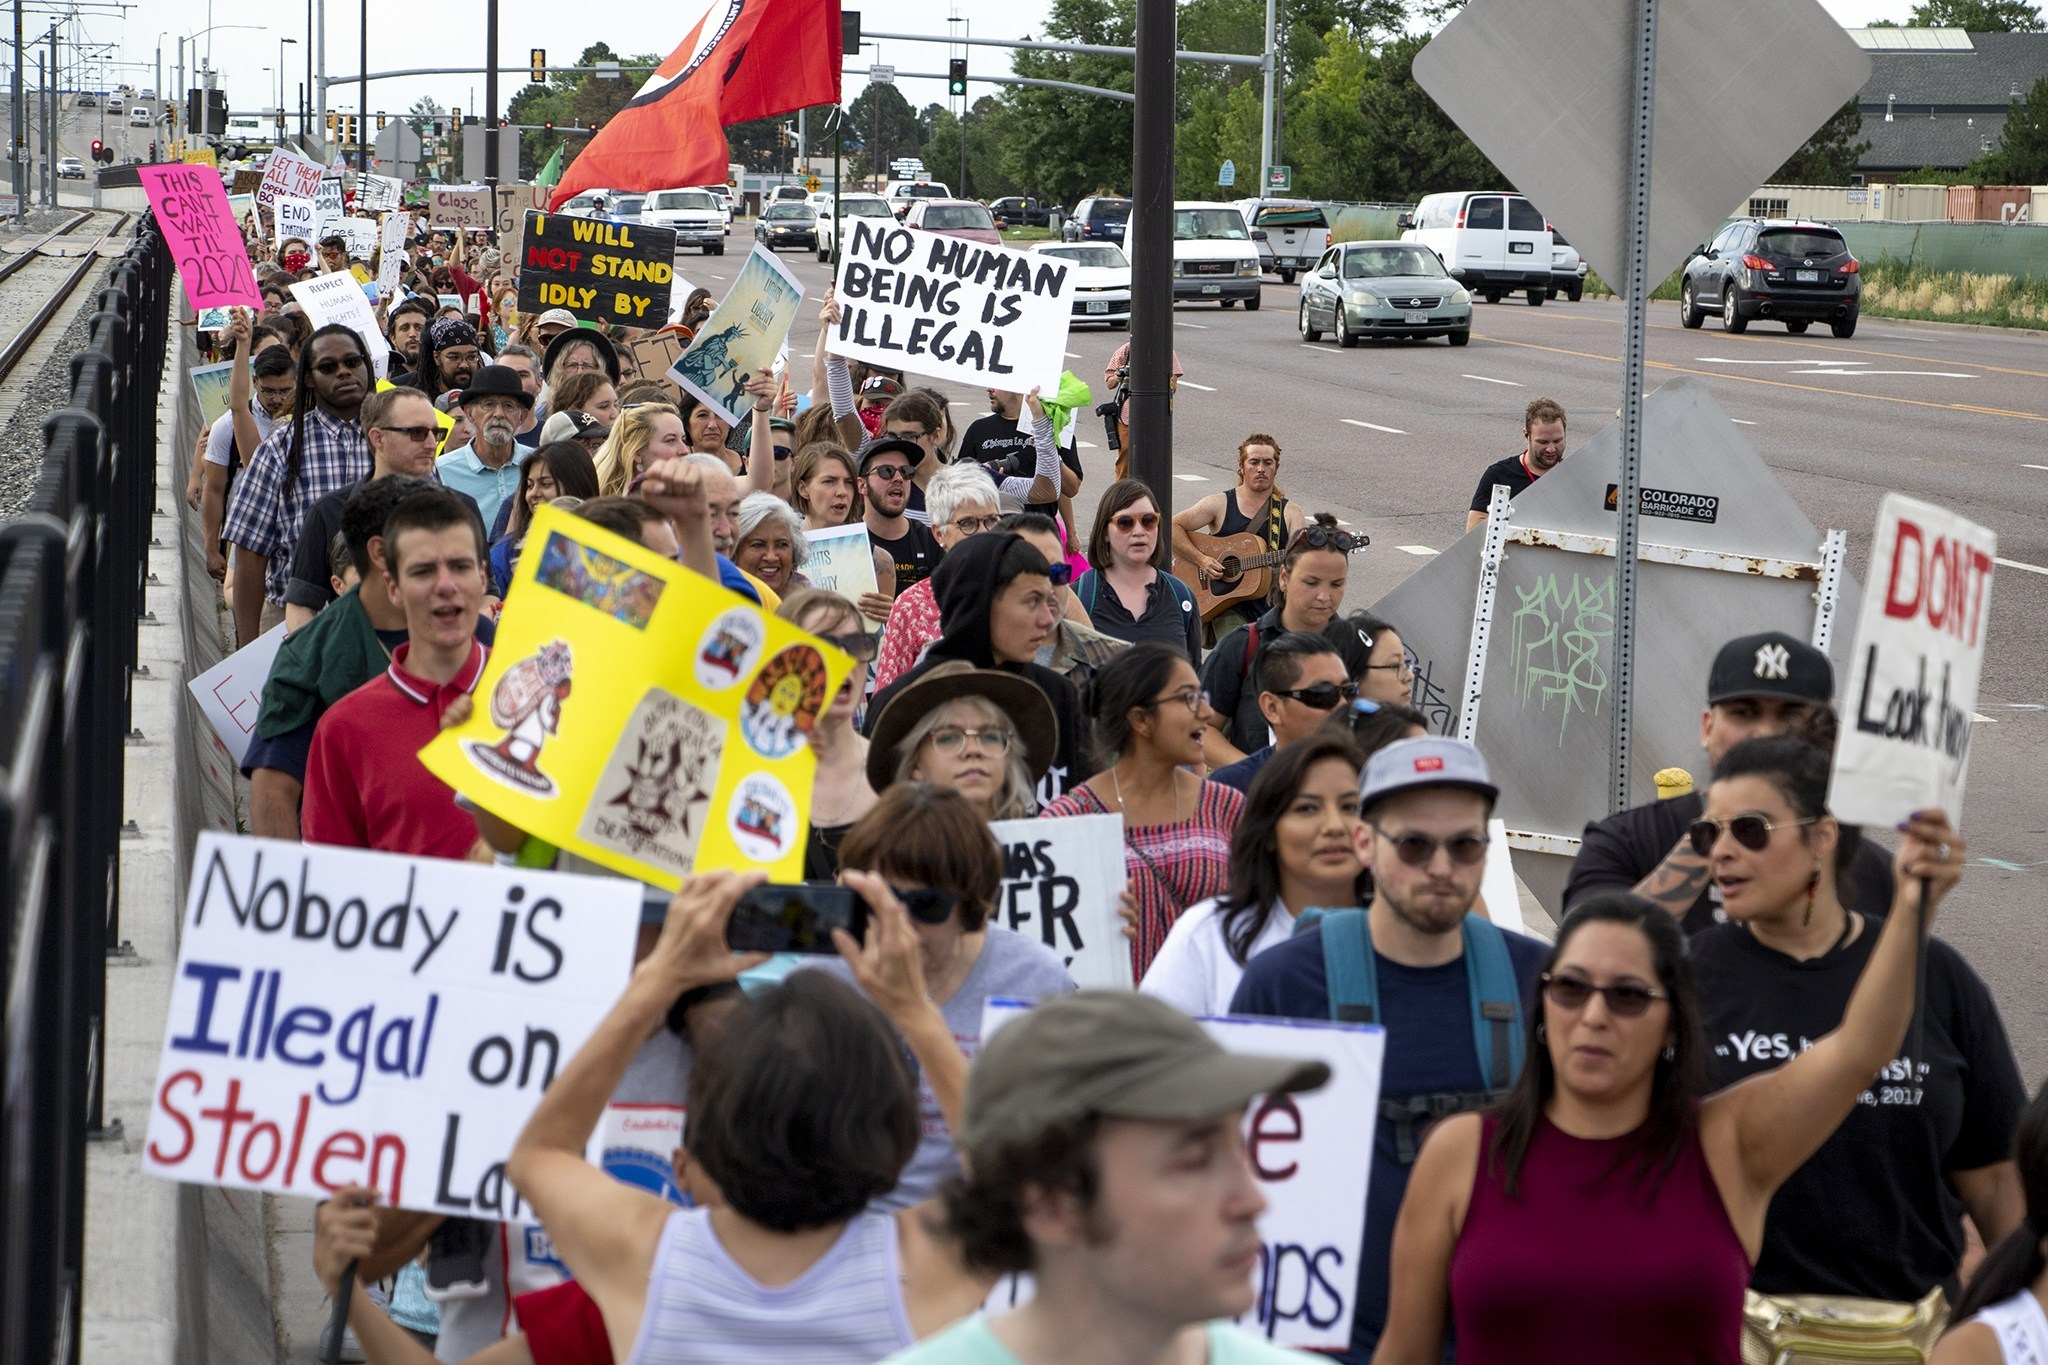 Protesters gather outside of Aurora's private immigration detention facility to denounce ICE raids and jails like this across the country, June 14, 2019.